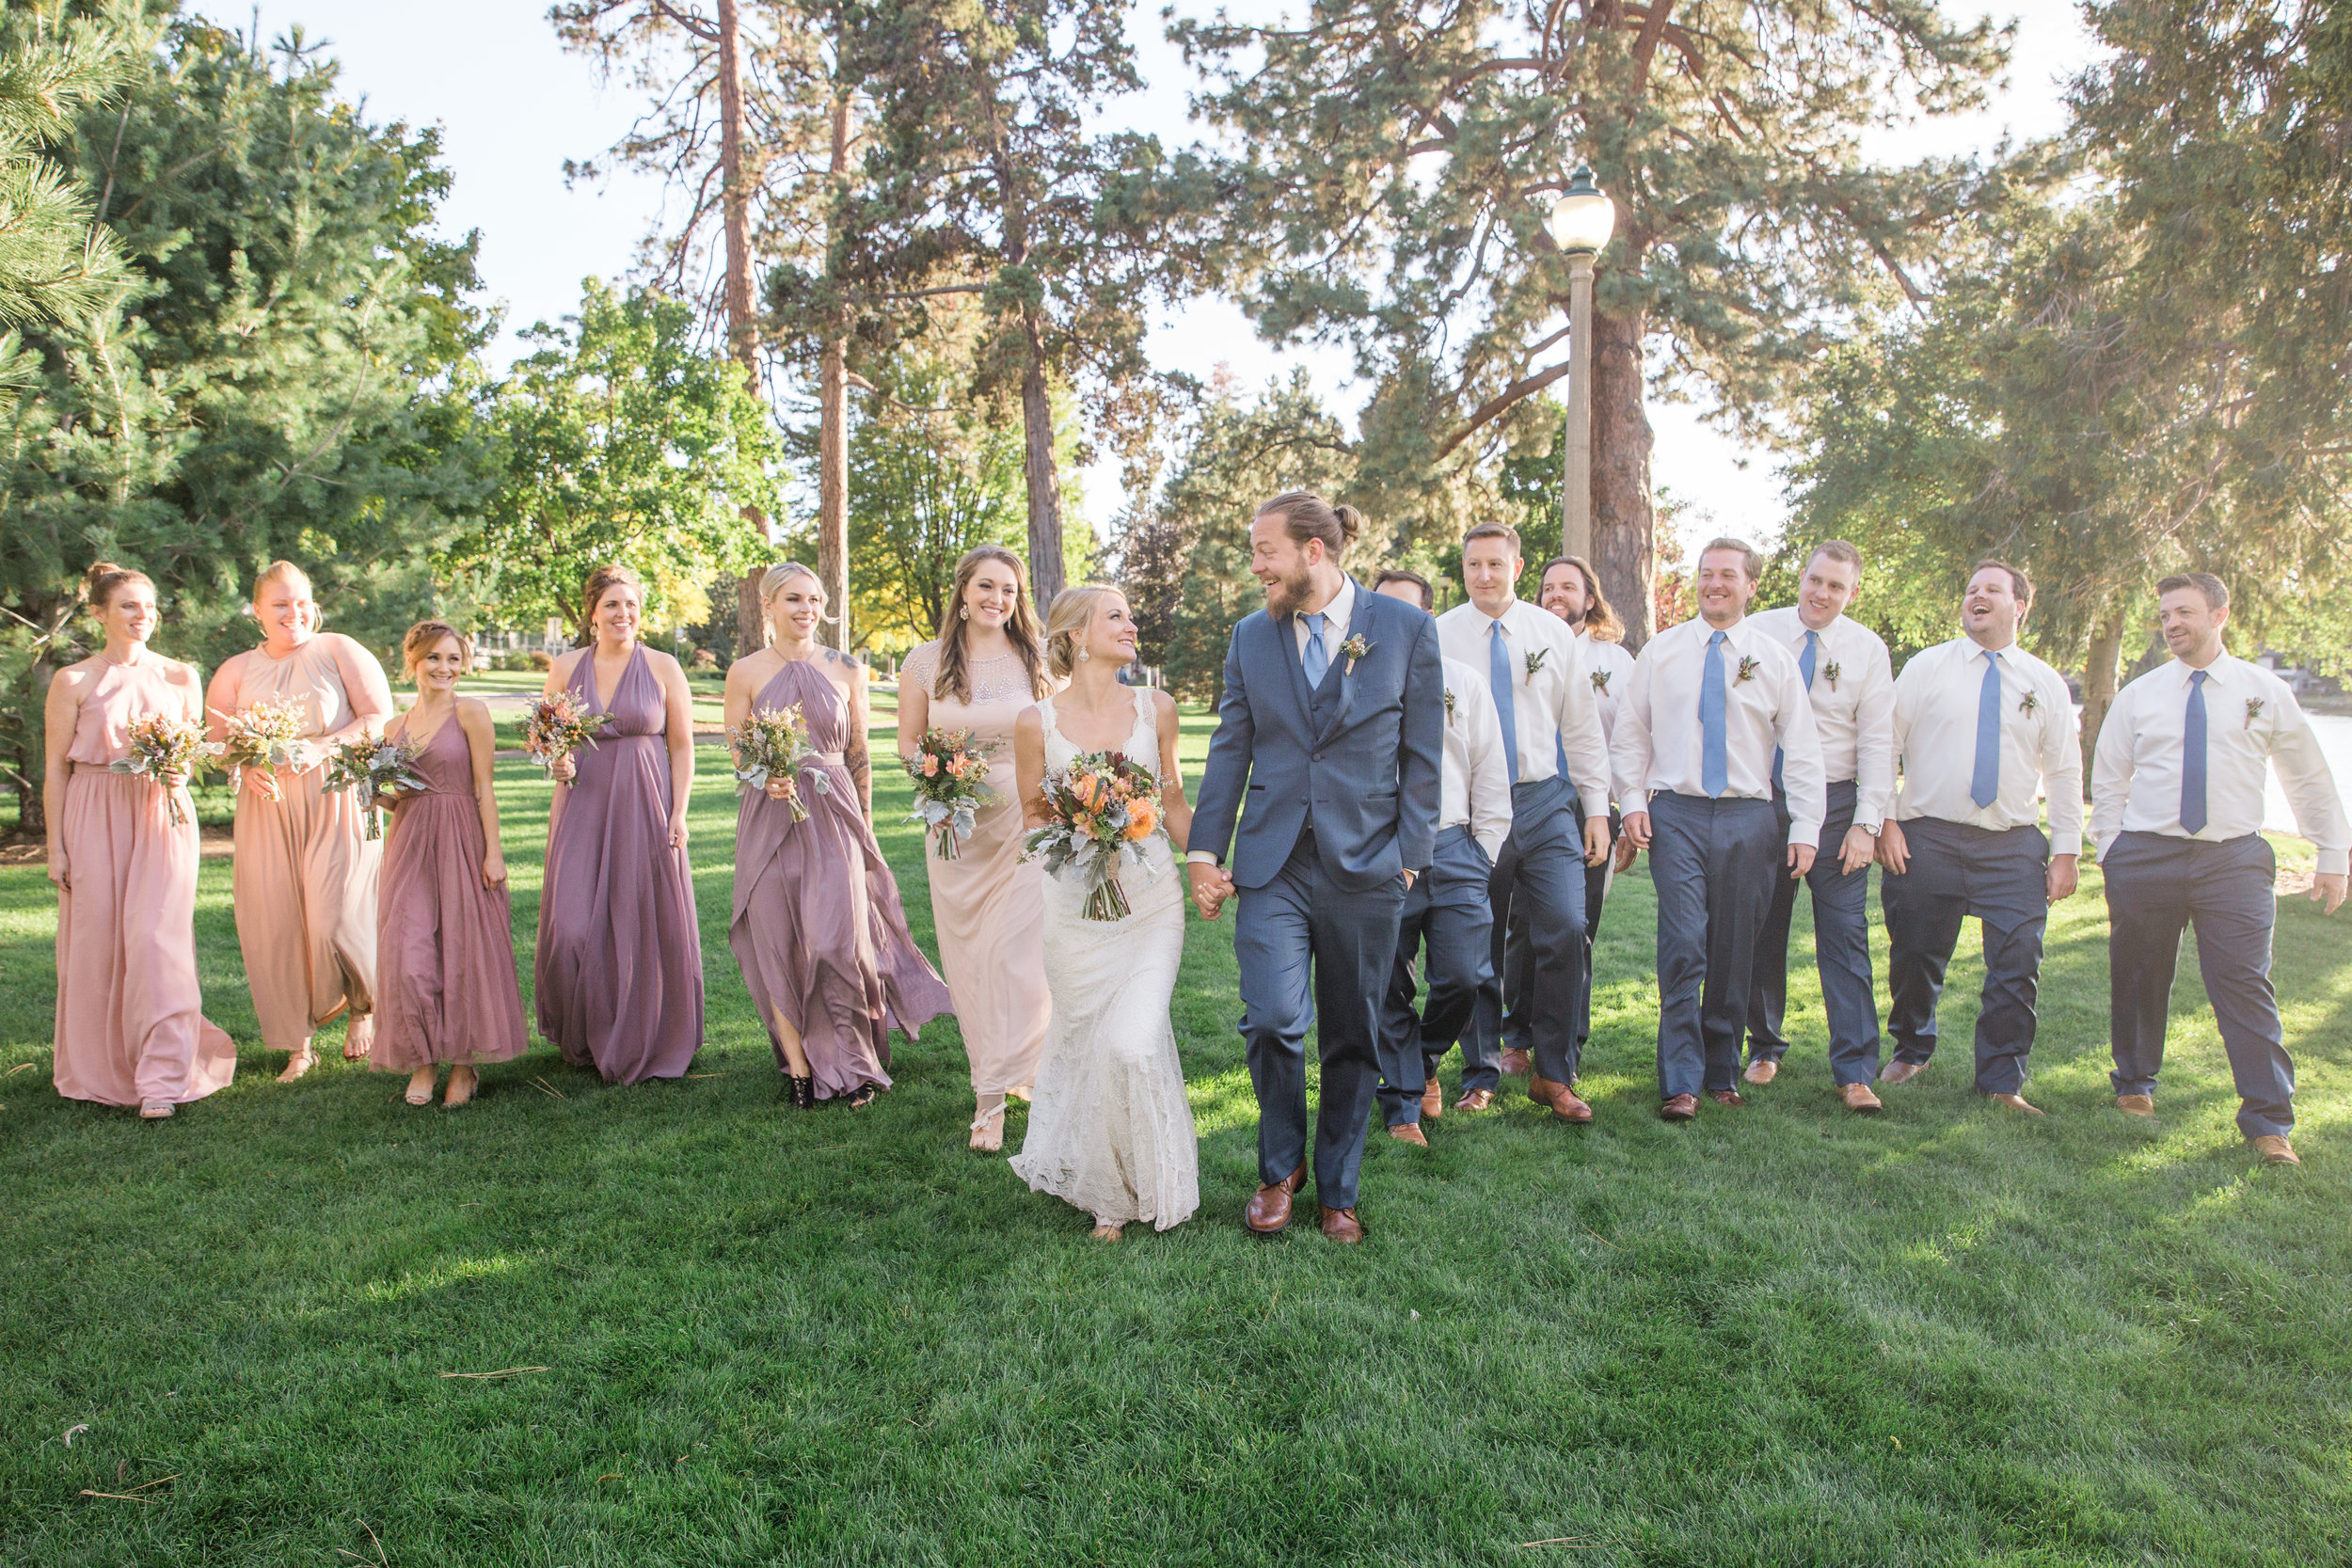 bend, oregon wedding photographer bridal party photos